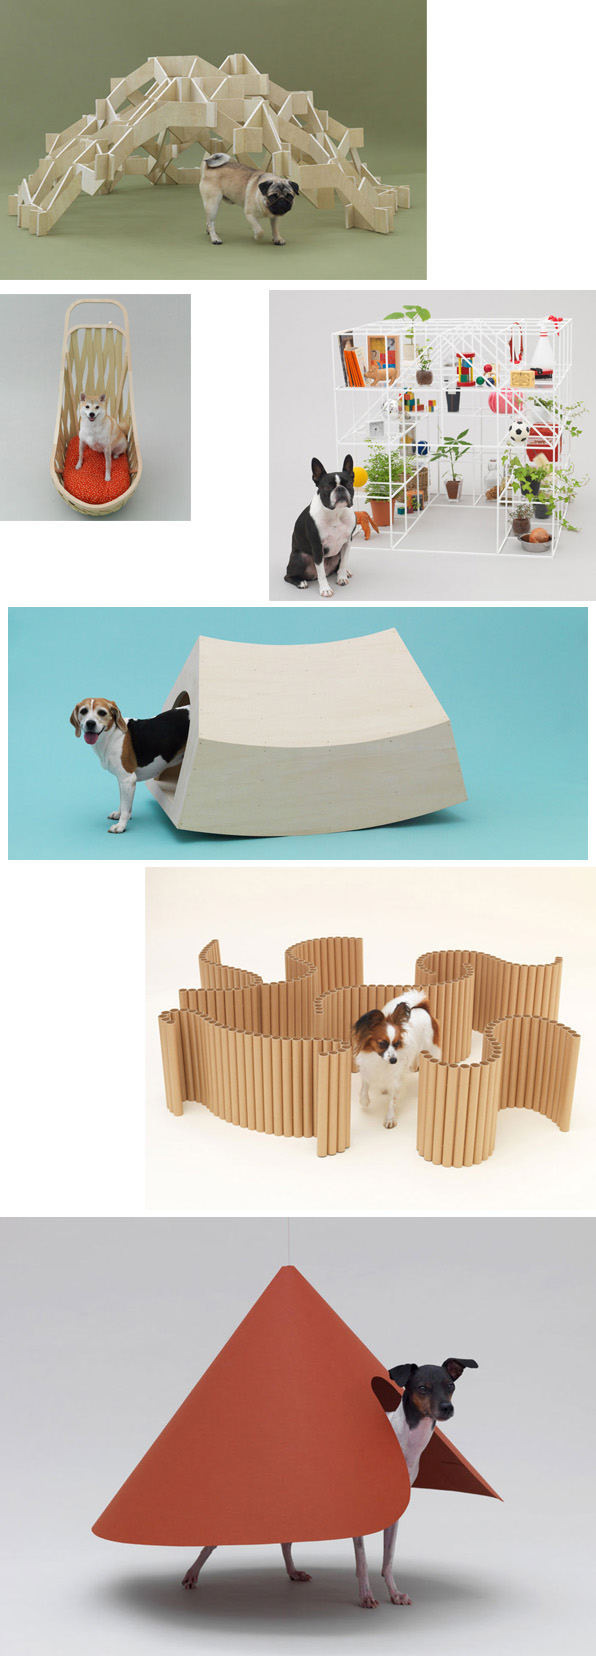 doghouse architecture dogs famous arquitectura perros © kenya hara